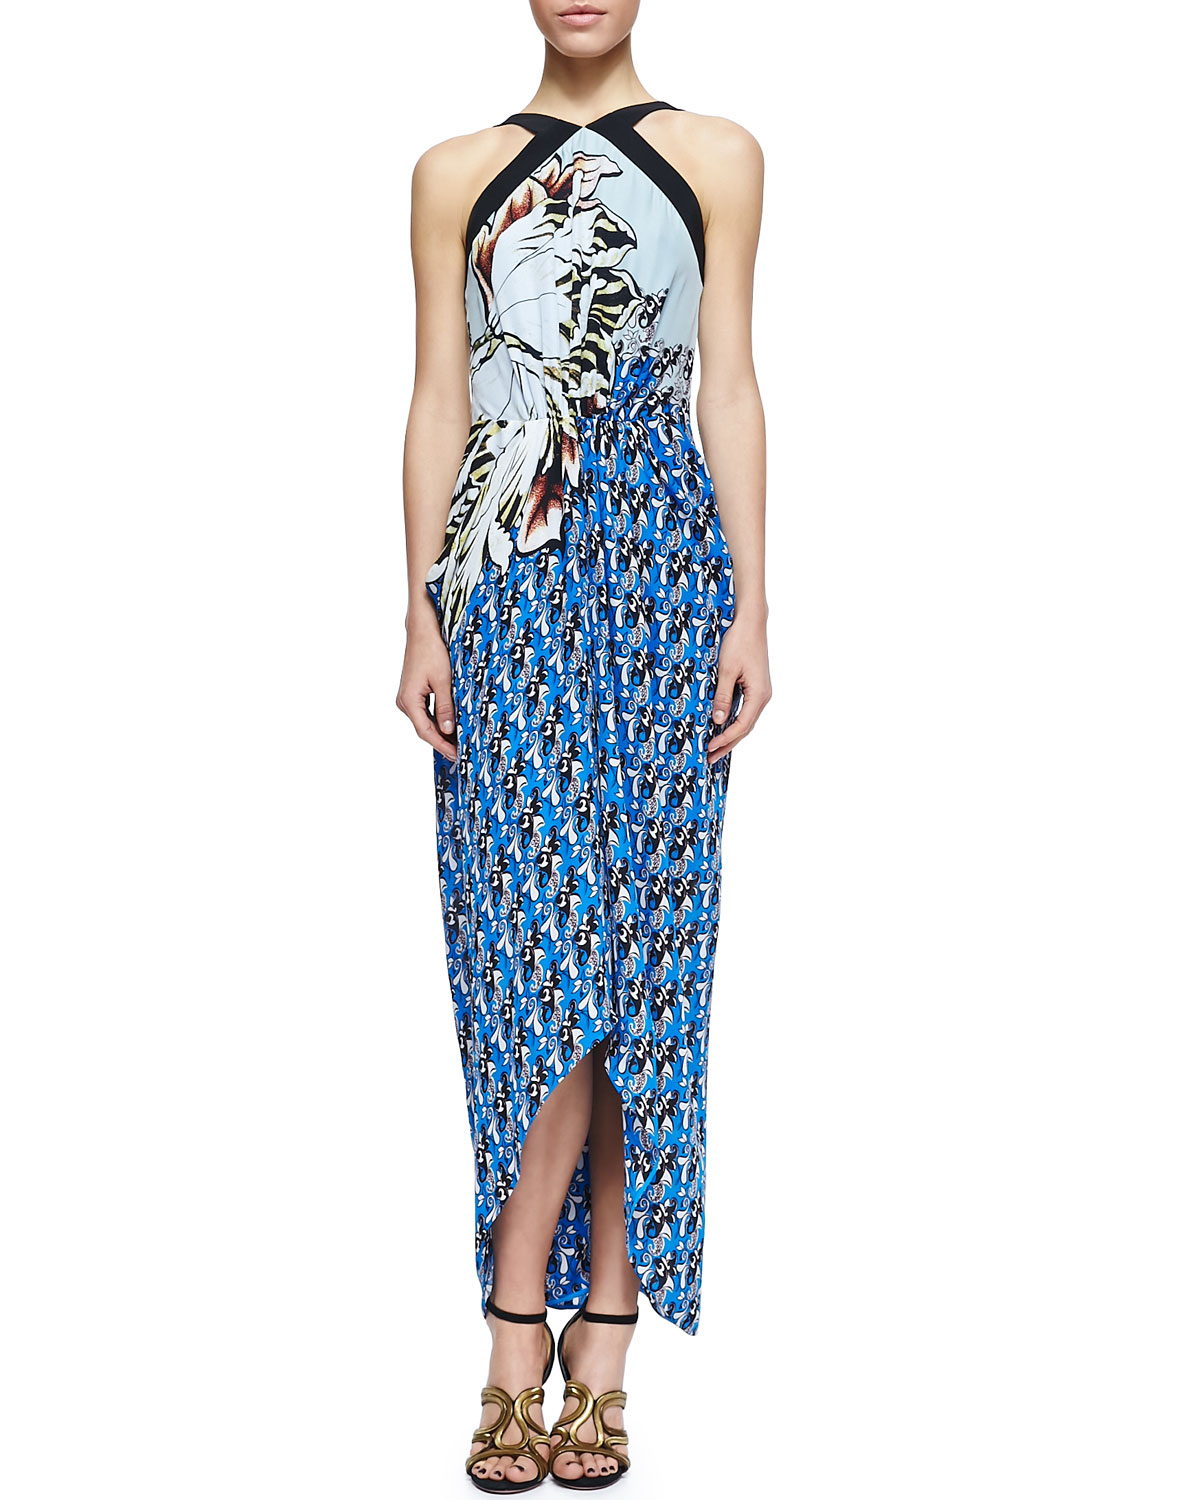 Sarong Dresses with Sleeves